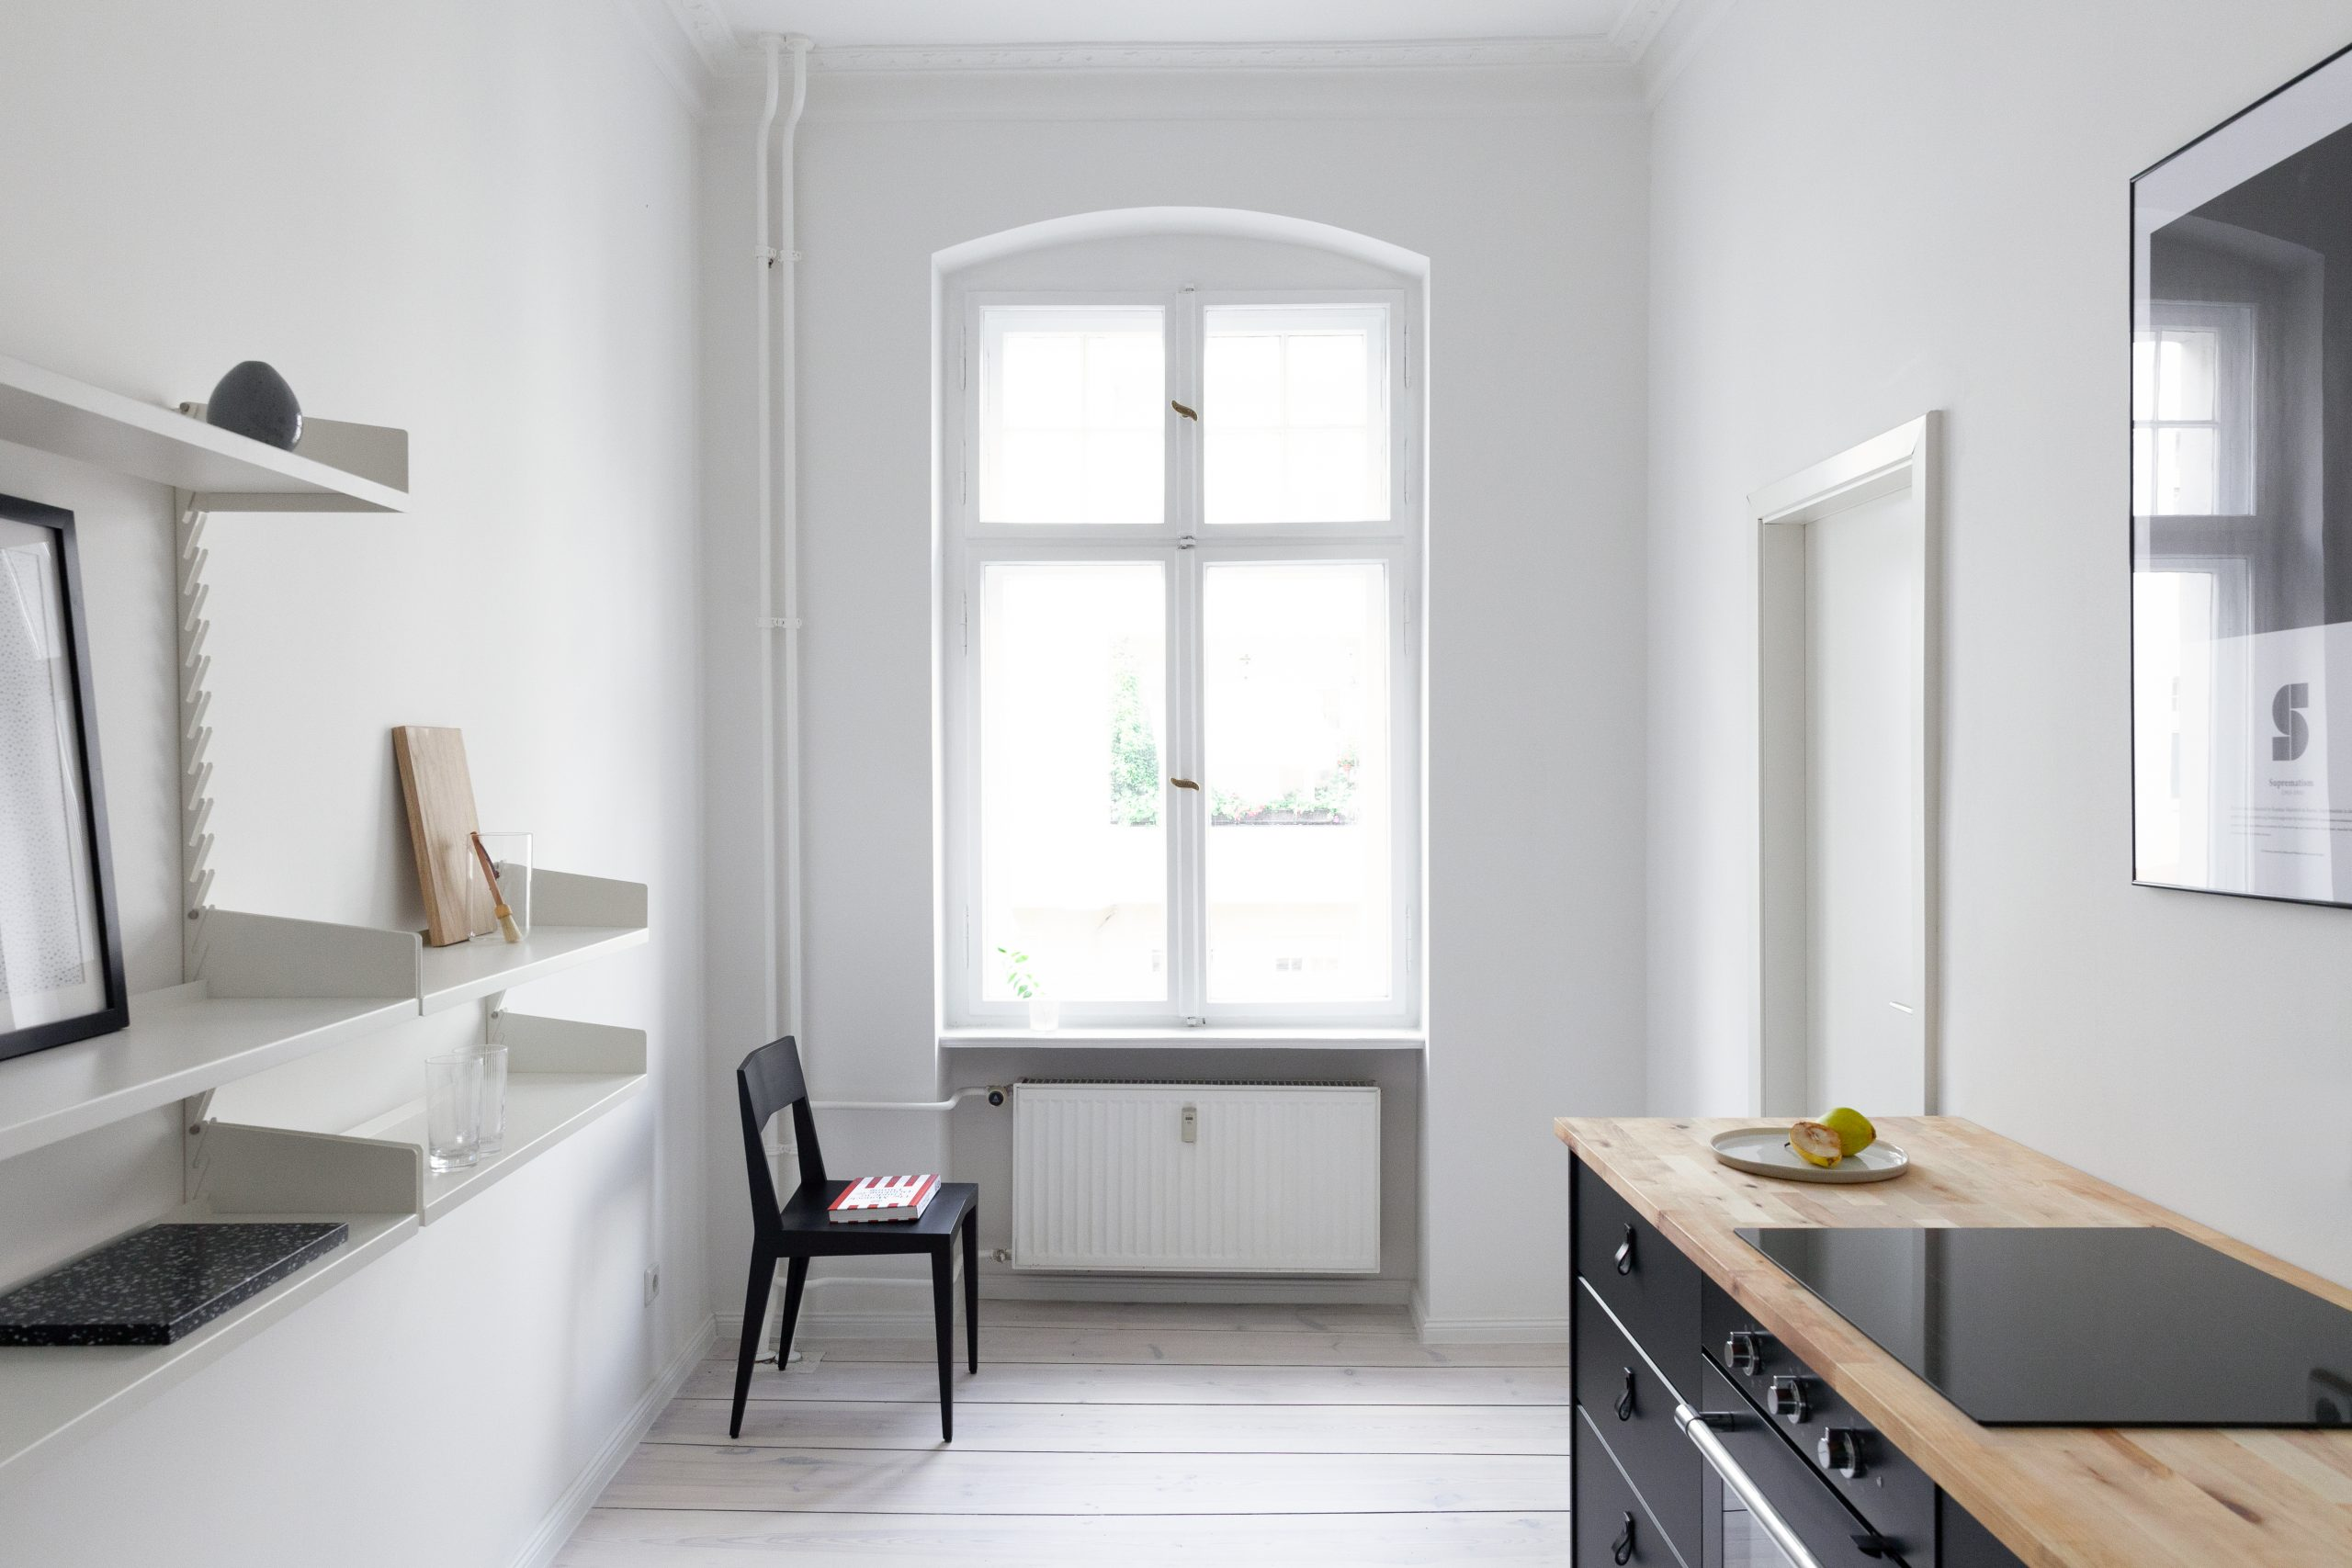 The kitchen room equipped with the Even Better Shelf set 2 + set 1 Extension for ultimate storage - Fantastic Frank Furnished Apartment.